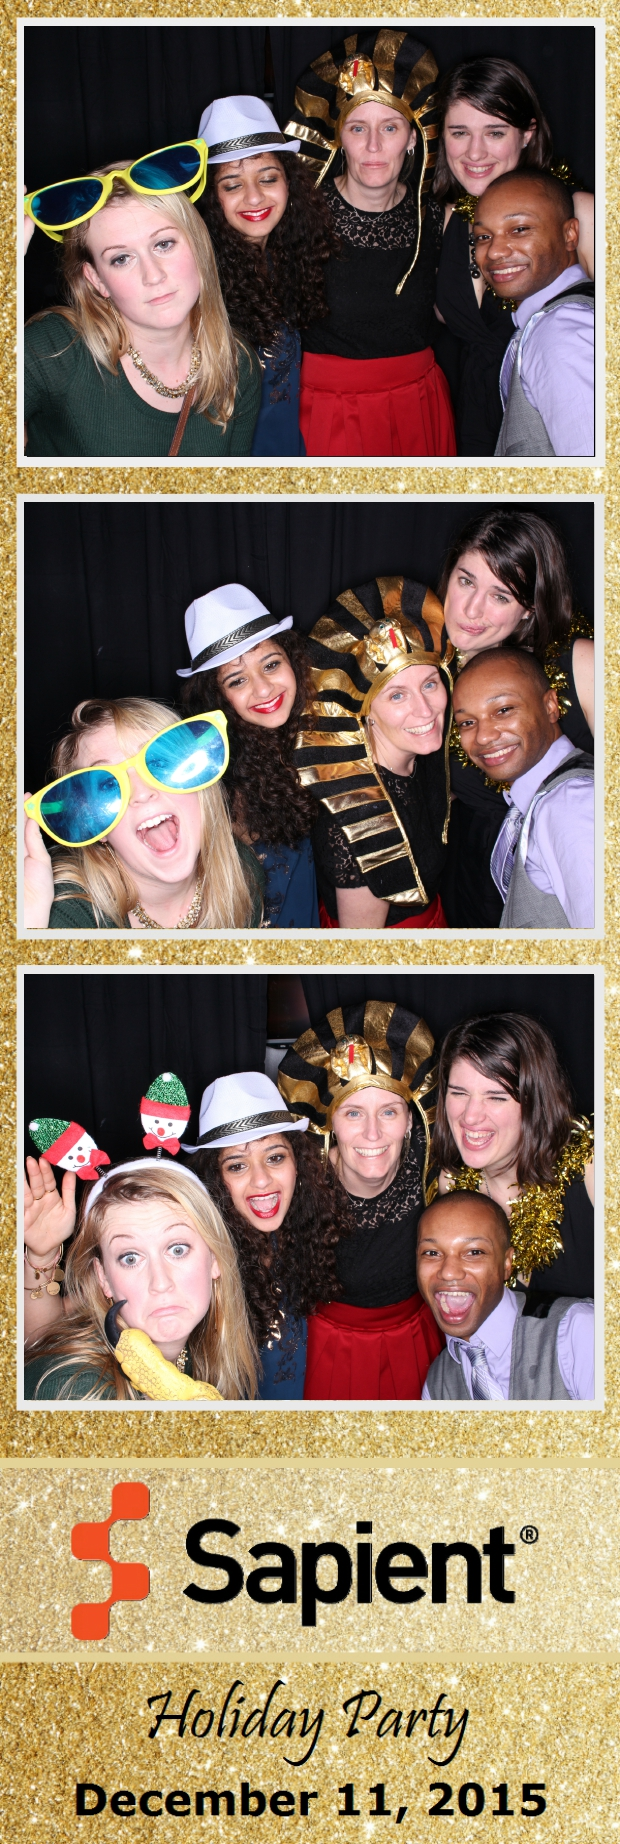 Guest House Events Photo Booth Sapient Holiday Party (87).jpg